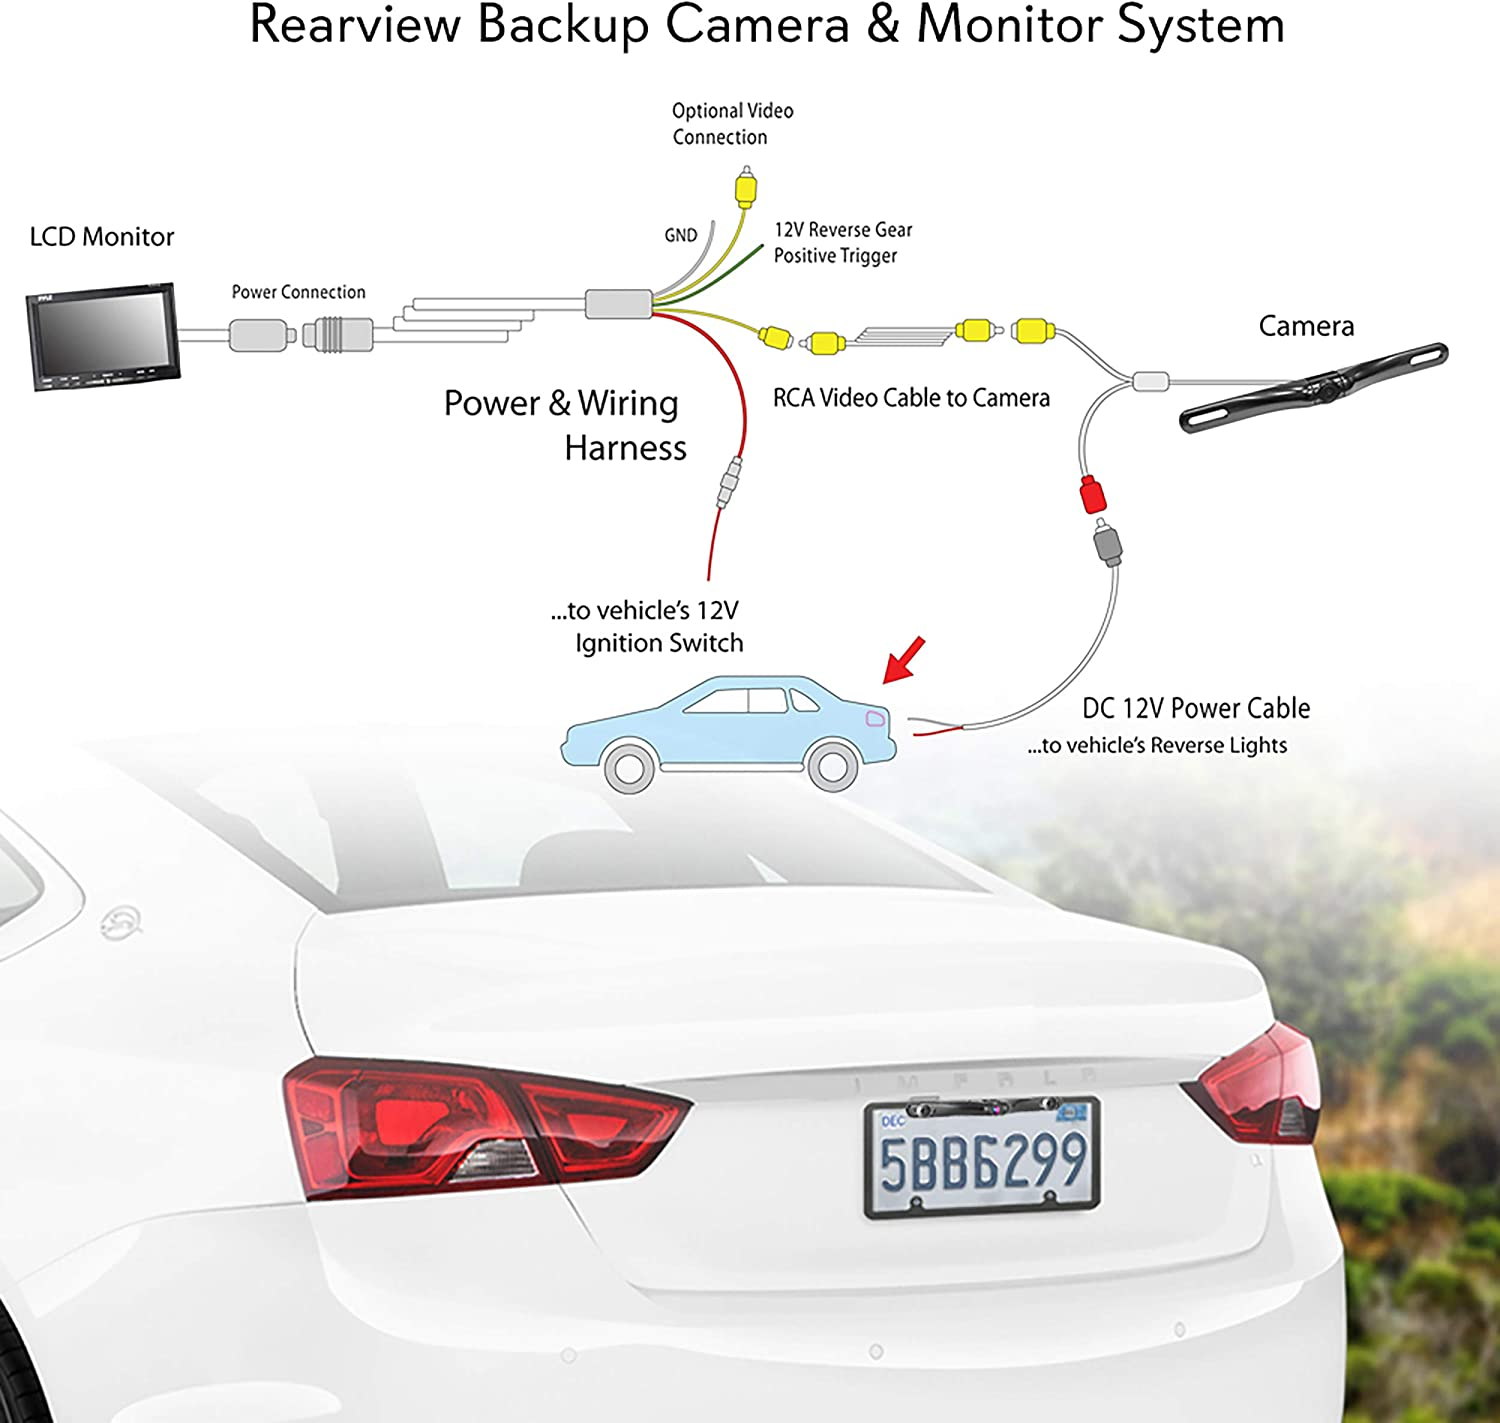 Amazon.com: Rear View Backup Car Camera - Screen Monitor System w/ Parking  and Reverse Assist Safety Distance Scale Lines, Waterproof & Night Vision,  7